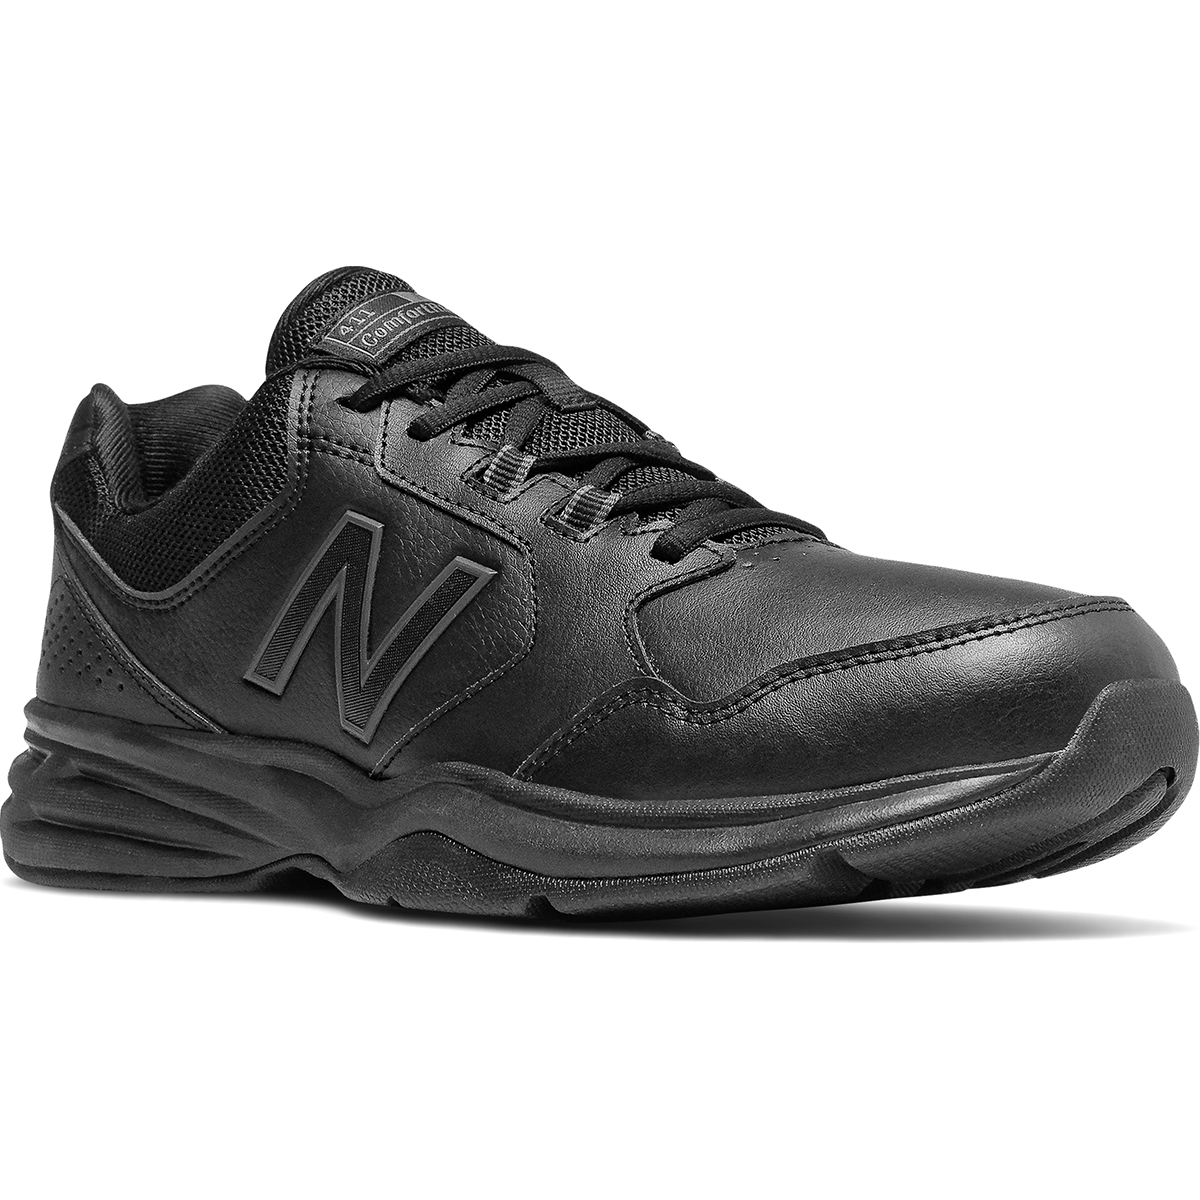 New Balance Men's 411 Walking Shoes - Black, 13